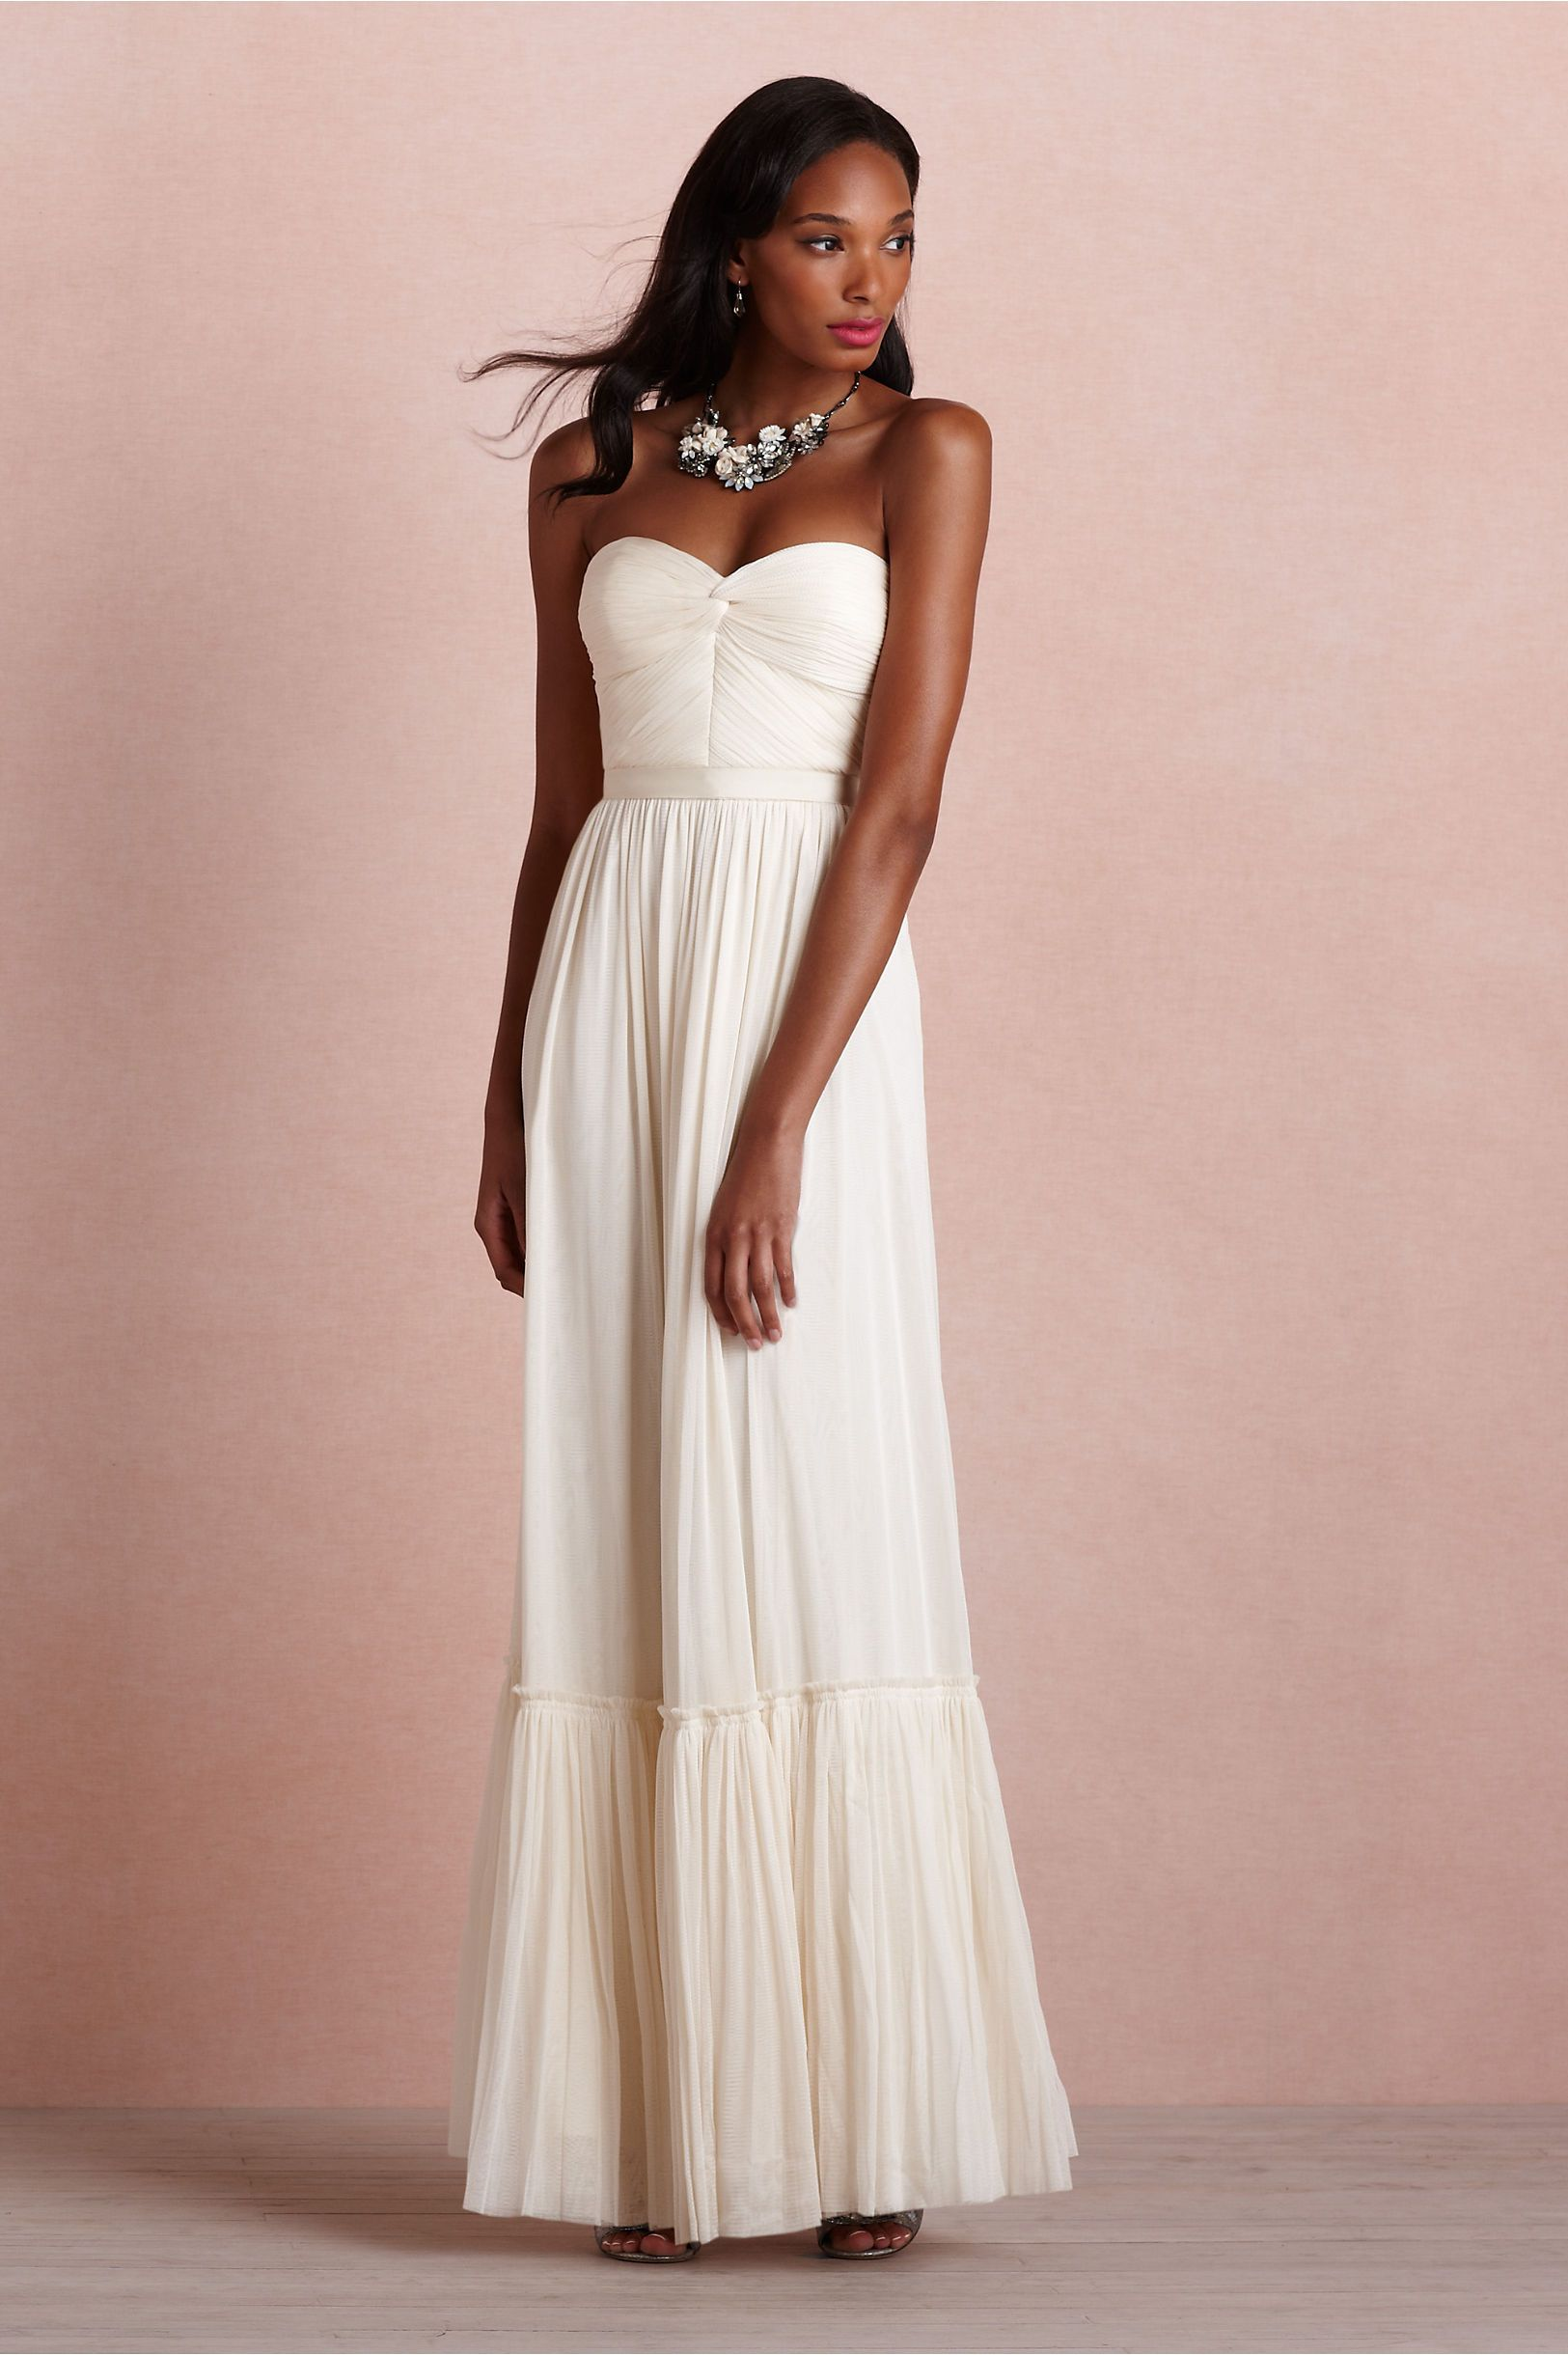 BHLDN Niceties / Style no. 29587201 Size 0 Wedding Dress | Flacos ...